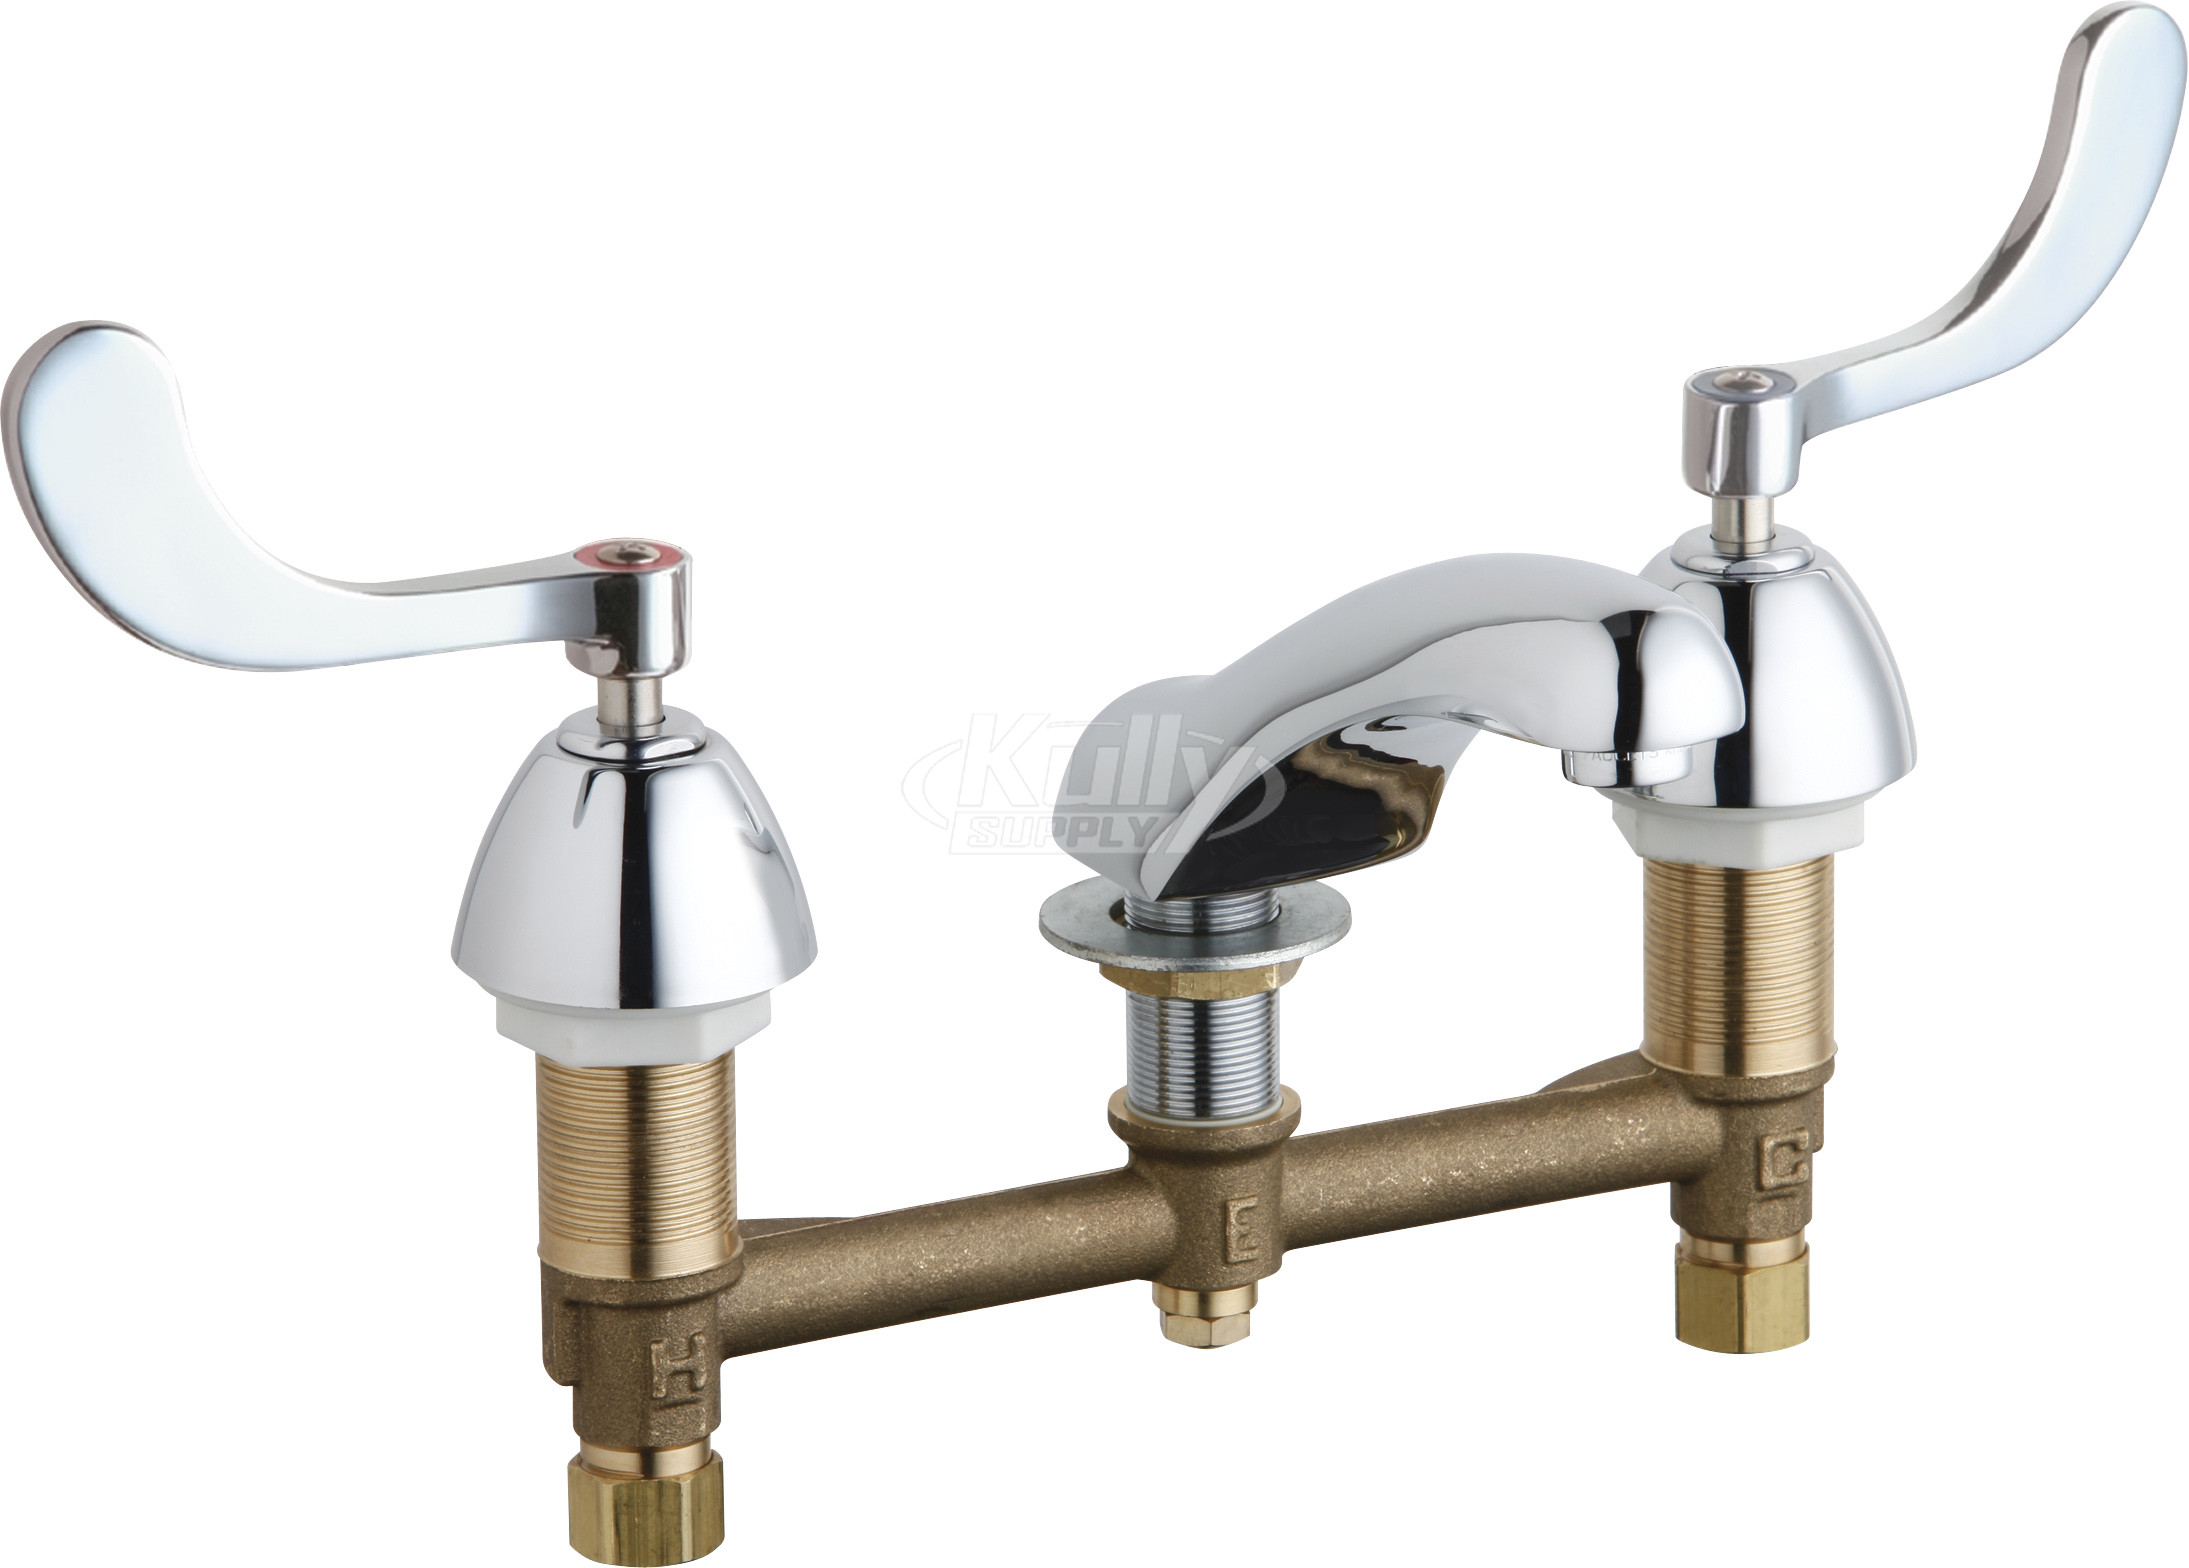 Chicago 404 317xkabcp Concealed Hot And Cold Water Sink